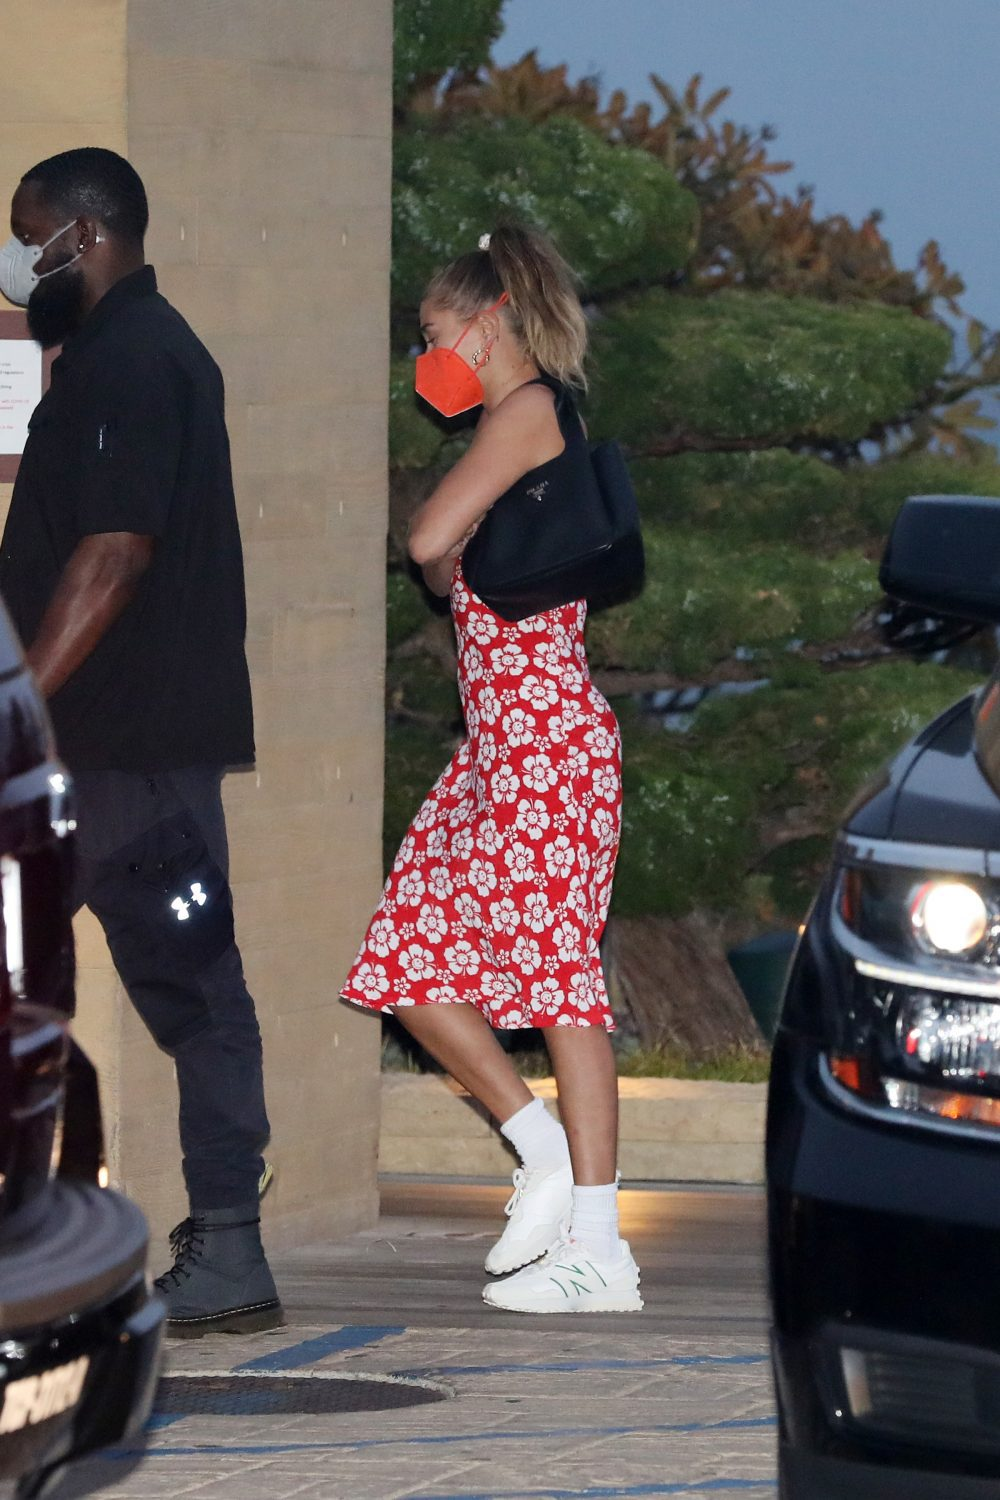 Hailey Bieber wears a red floral dress as she dines at Nobu Malibu